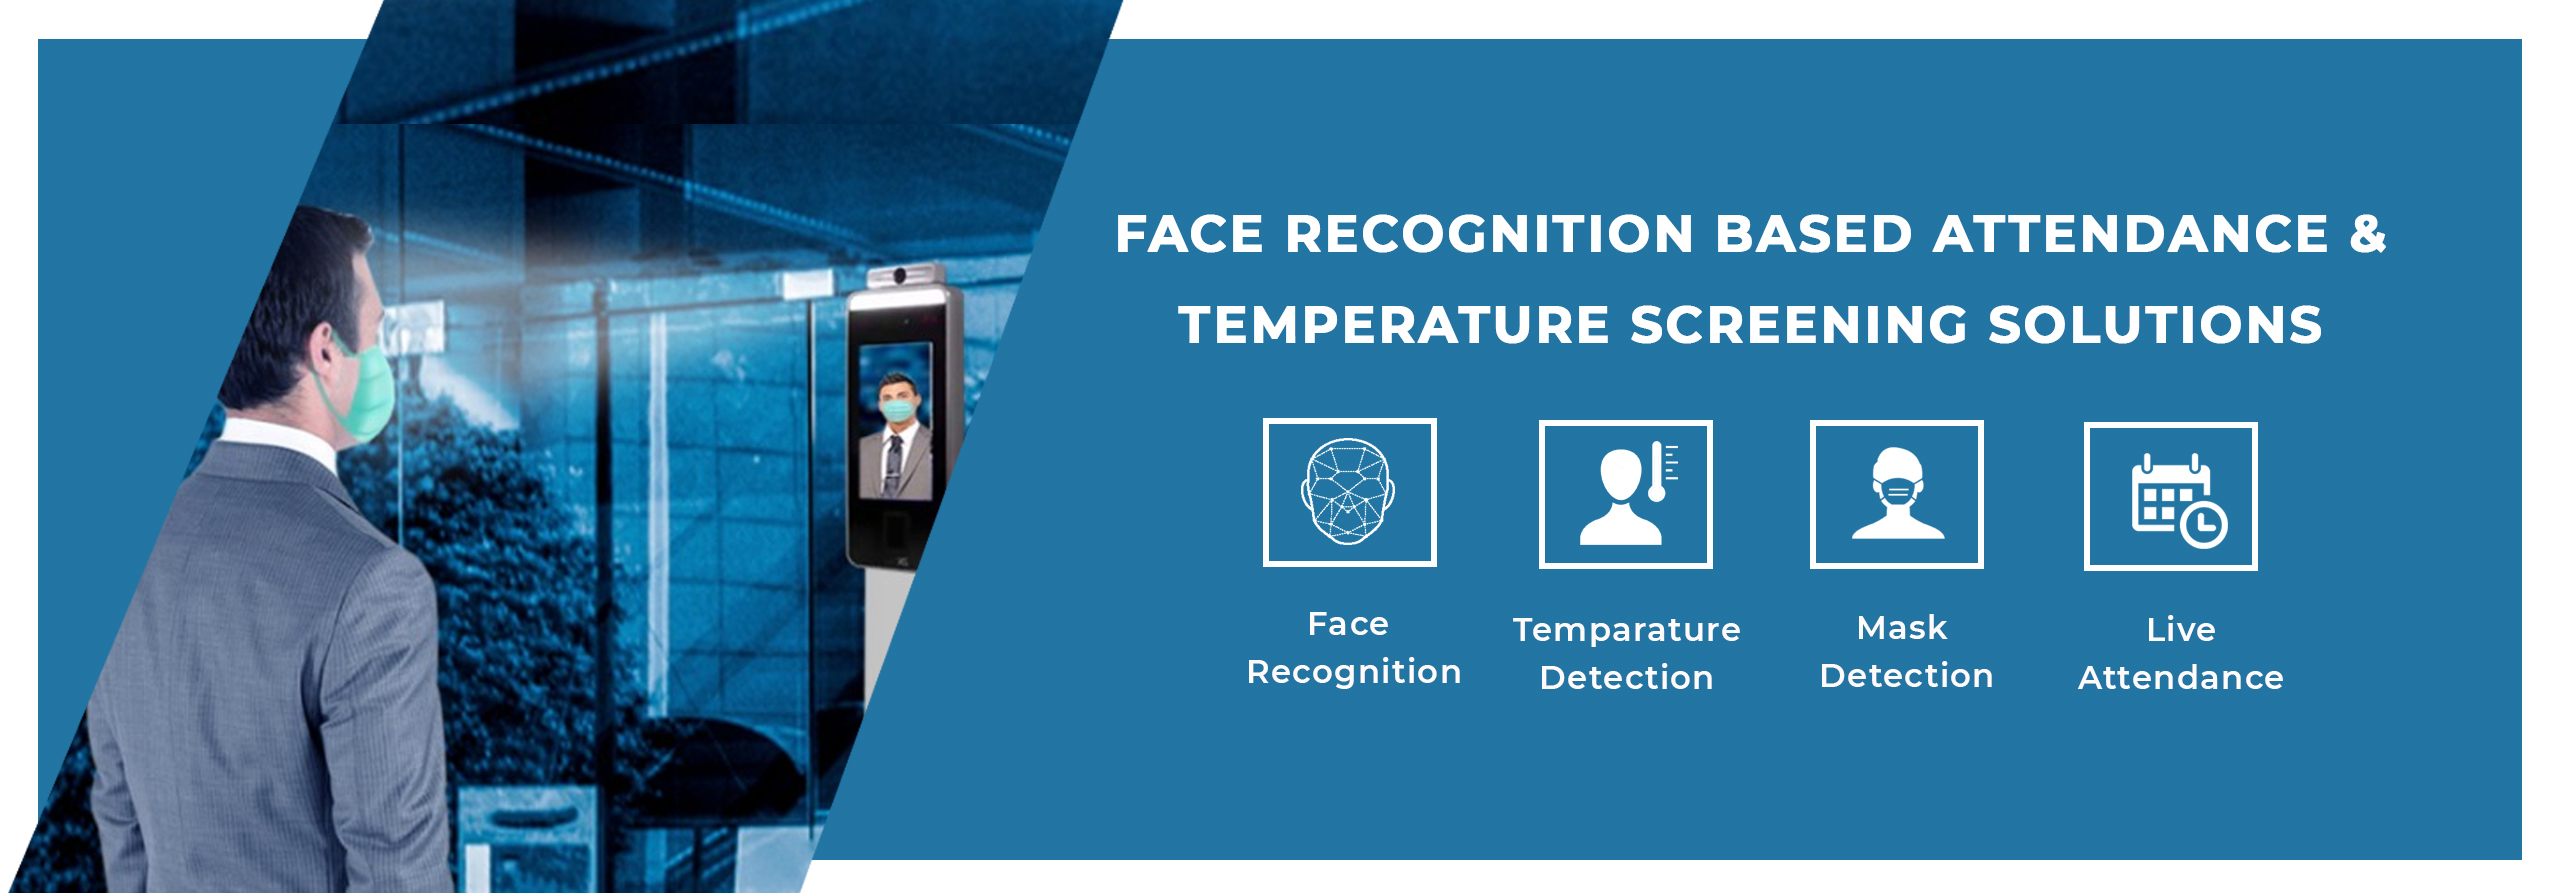 Face Recognition Based Attendance & Temperature Screening Solutions